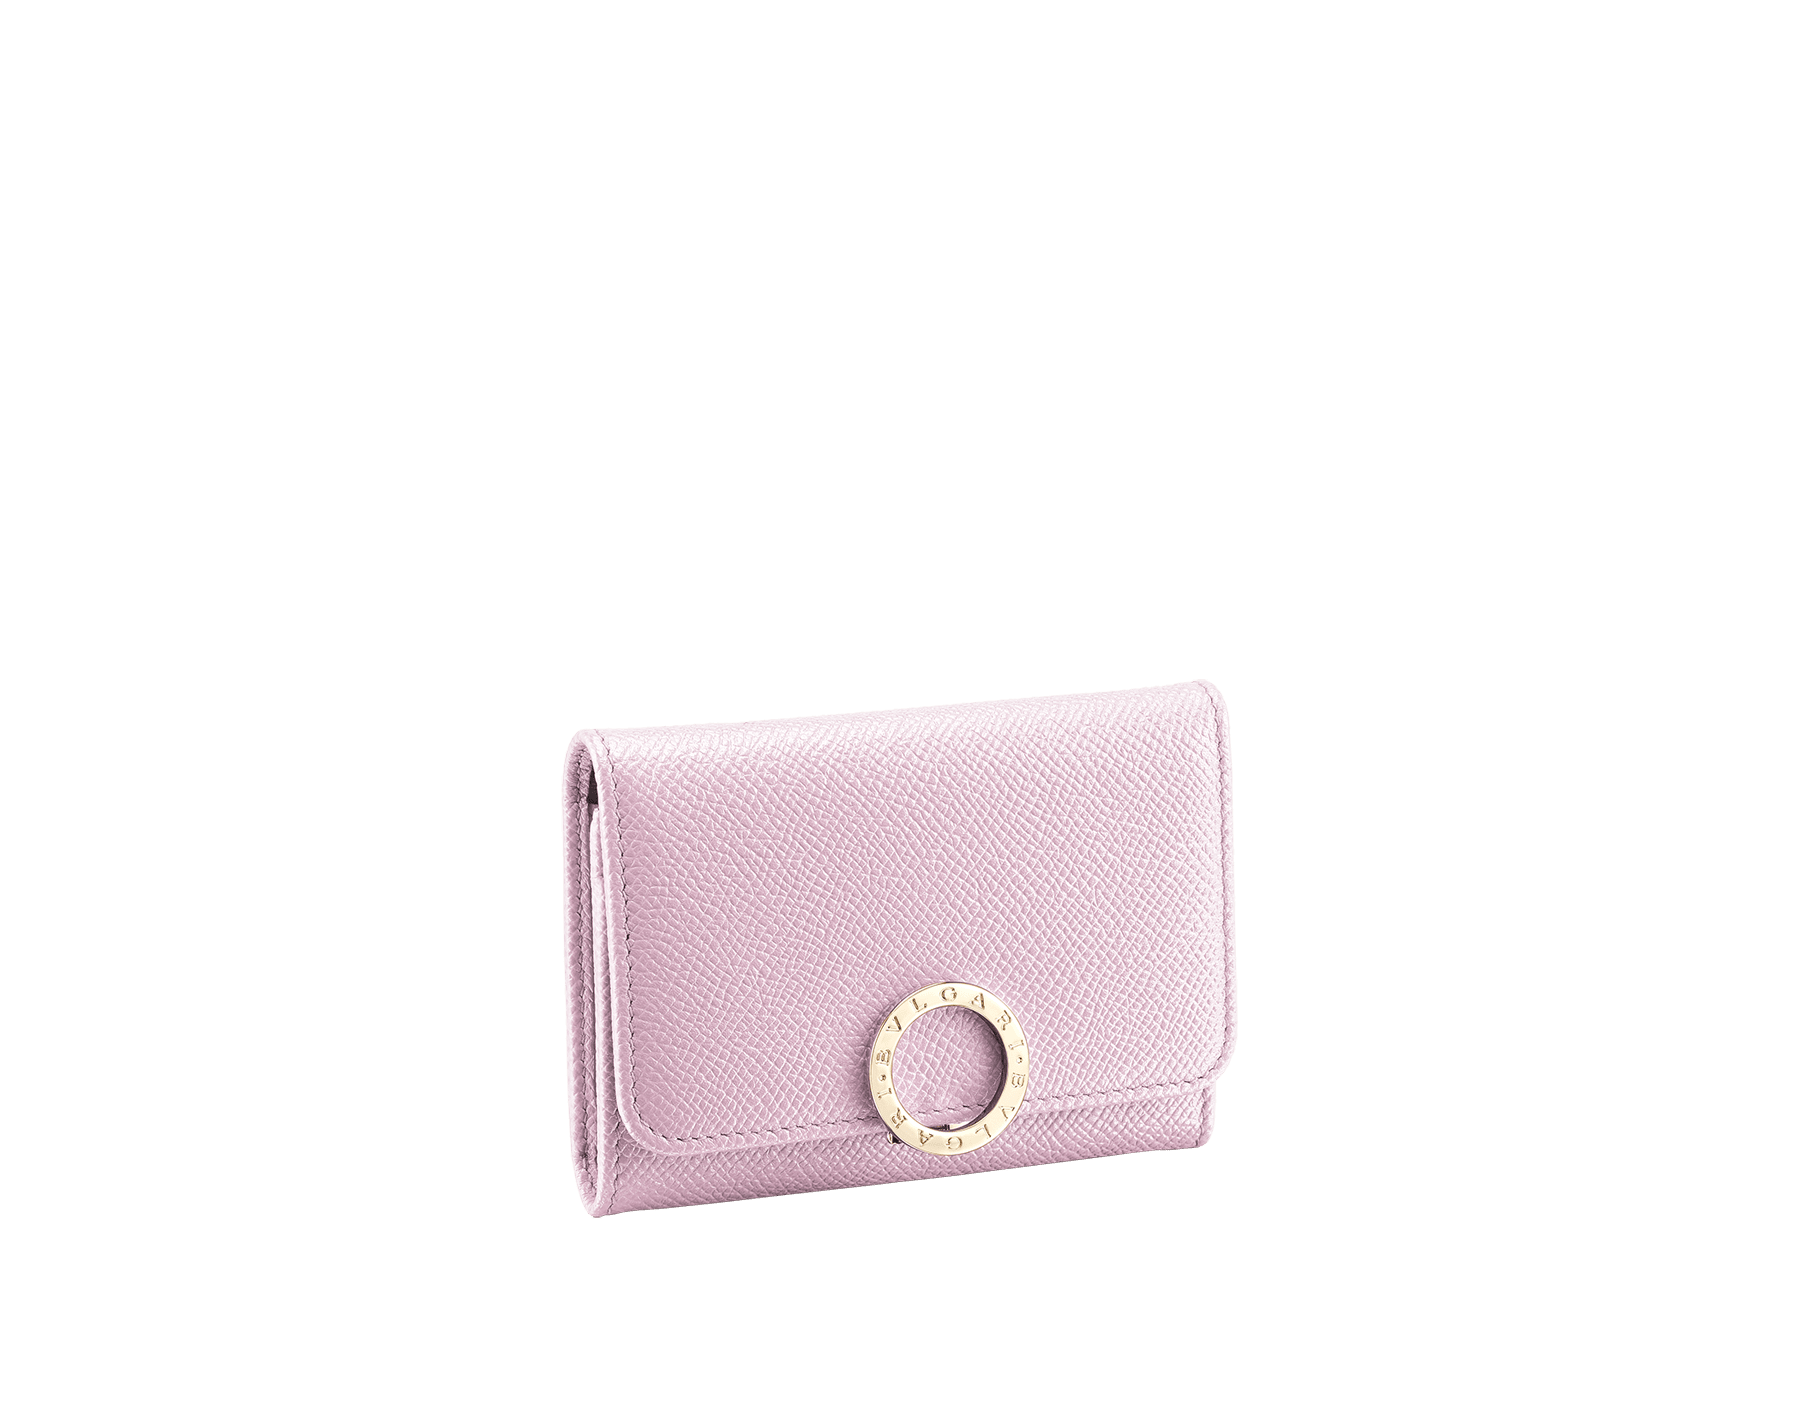 BVLGARI BVLGARI business card holder in rosa di francia bright grain calf leather and flamingo quartz nappa leather. Iconic logo clip closure in light gold plated brass. 289039 image 1